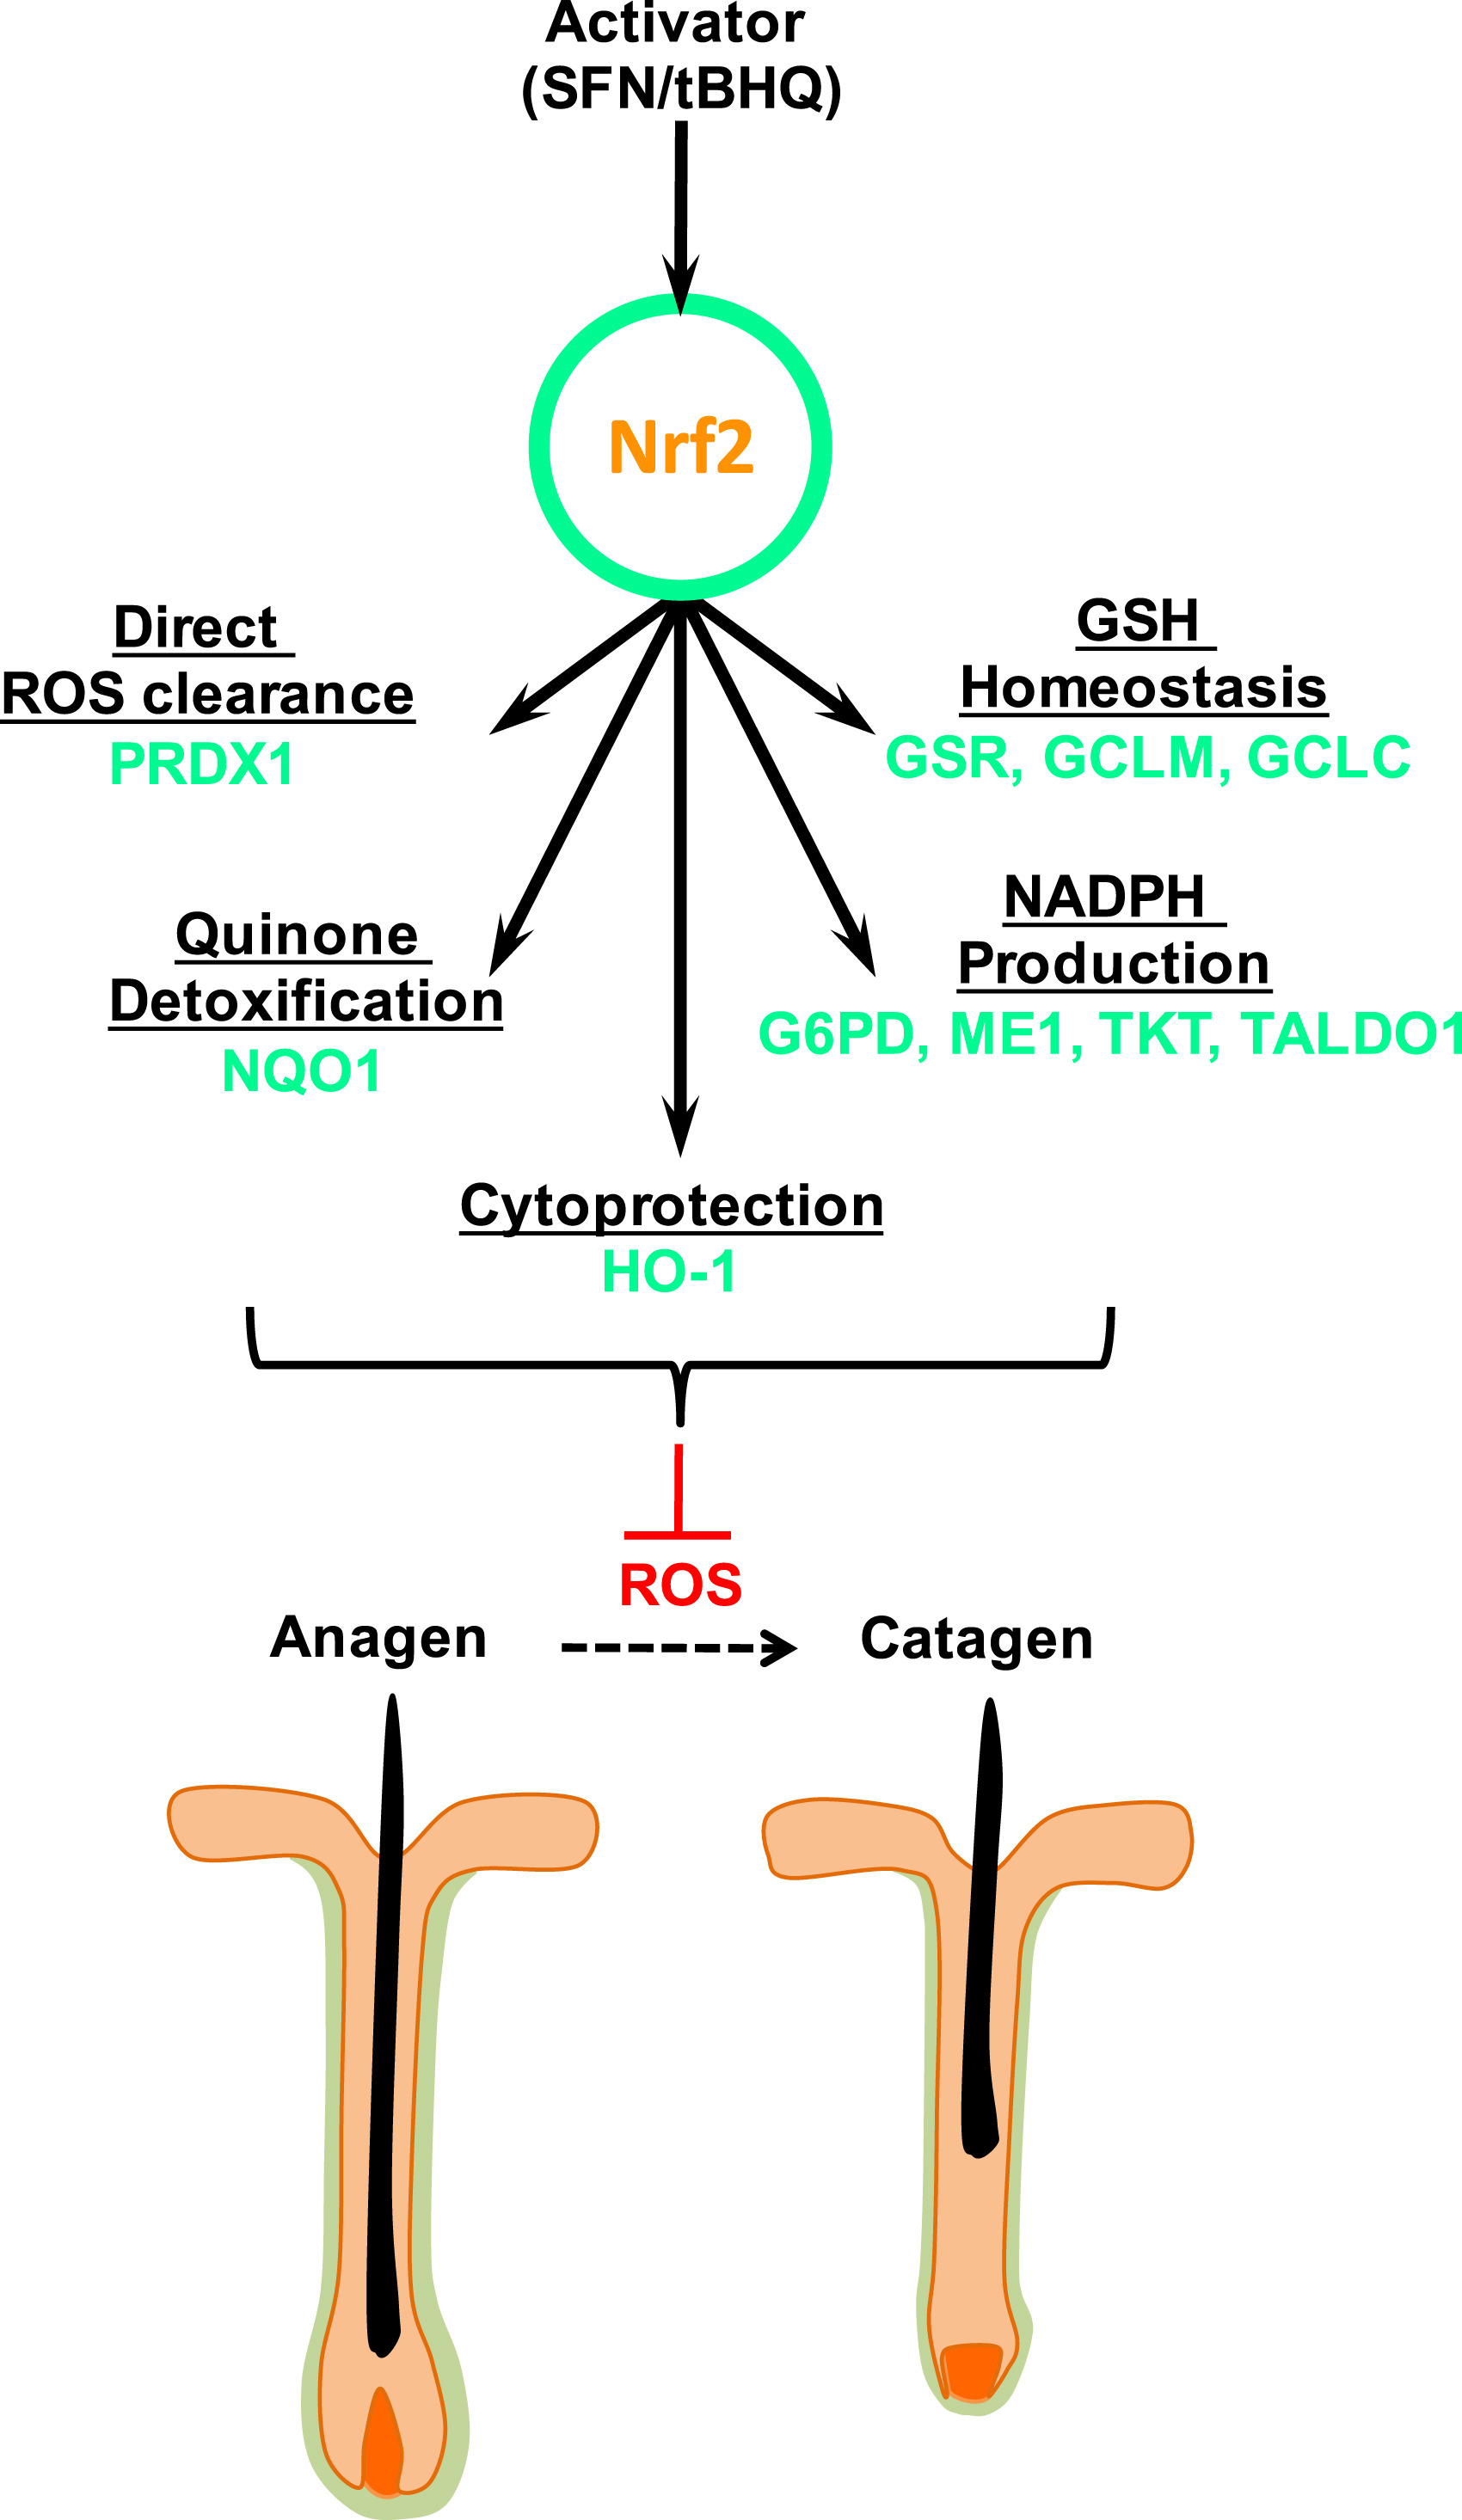 the significance of controlling the gene responsible for apoptosis phenomenon in age control In this review the incidence of apoptosis in the stem cells of both the small and large intestine will be discussed in relation to the expression of a number of apoptosis regulating genes (eg p53, bcl‐2, bax) within these cells the importance of apoptosis as a means of controlling stem cell number (and therefore cellular output) will be.